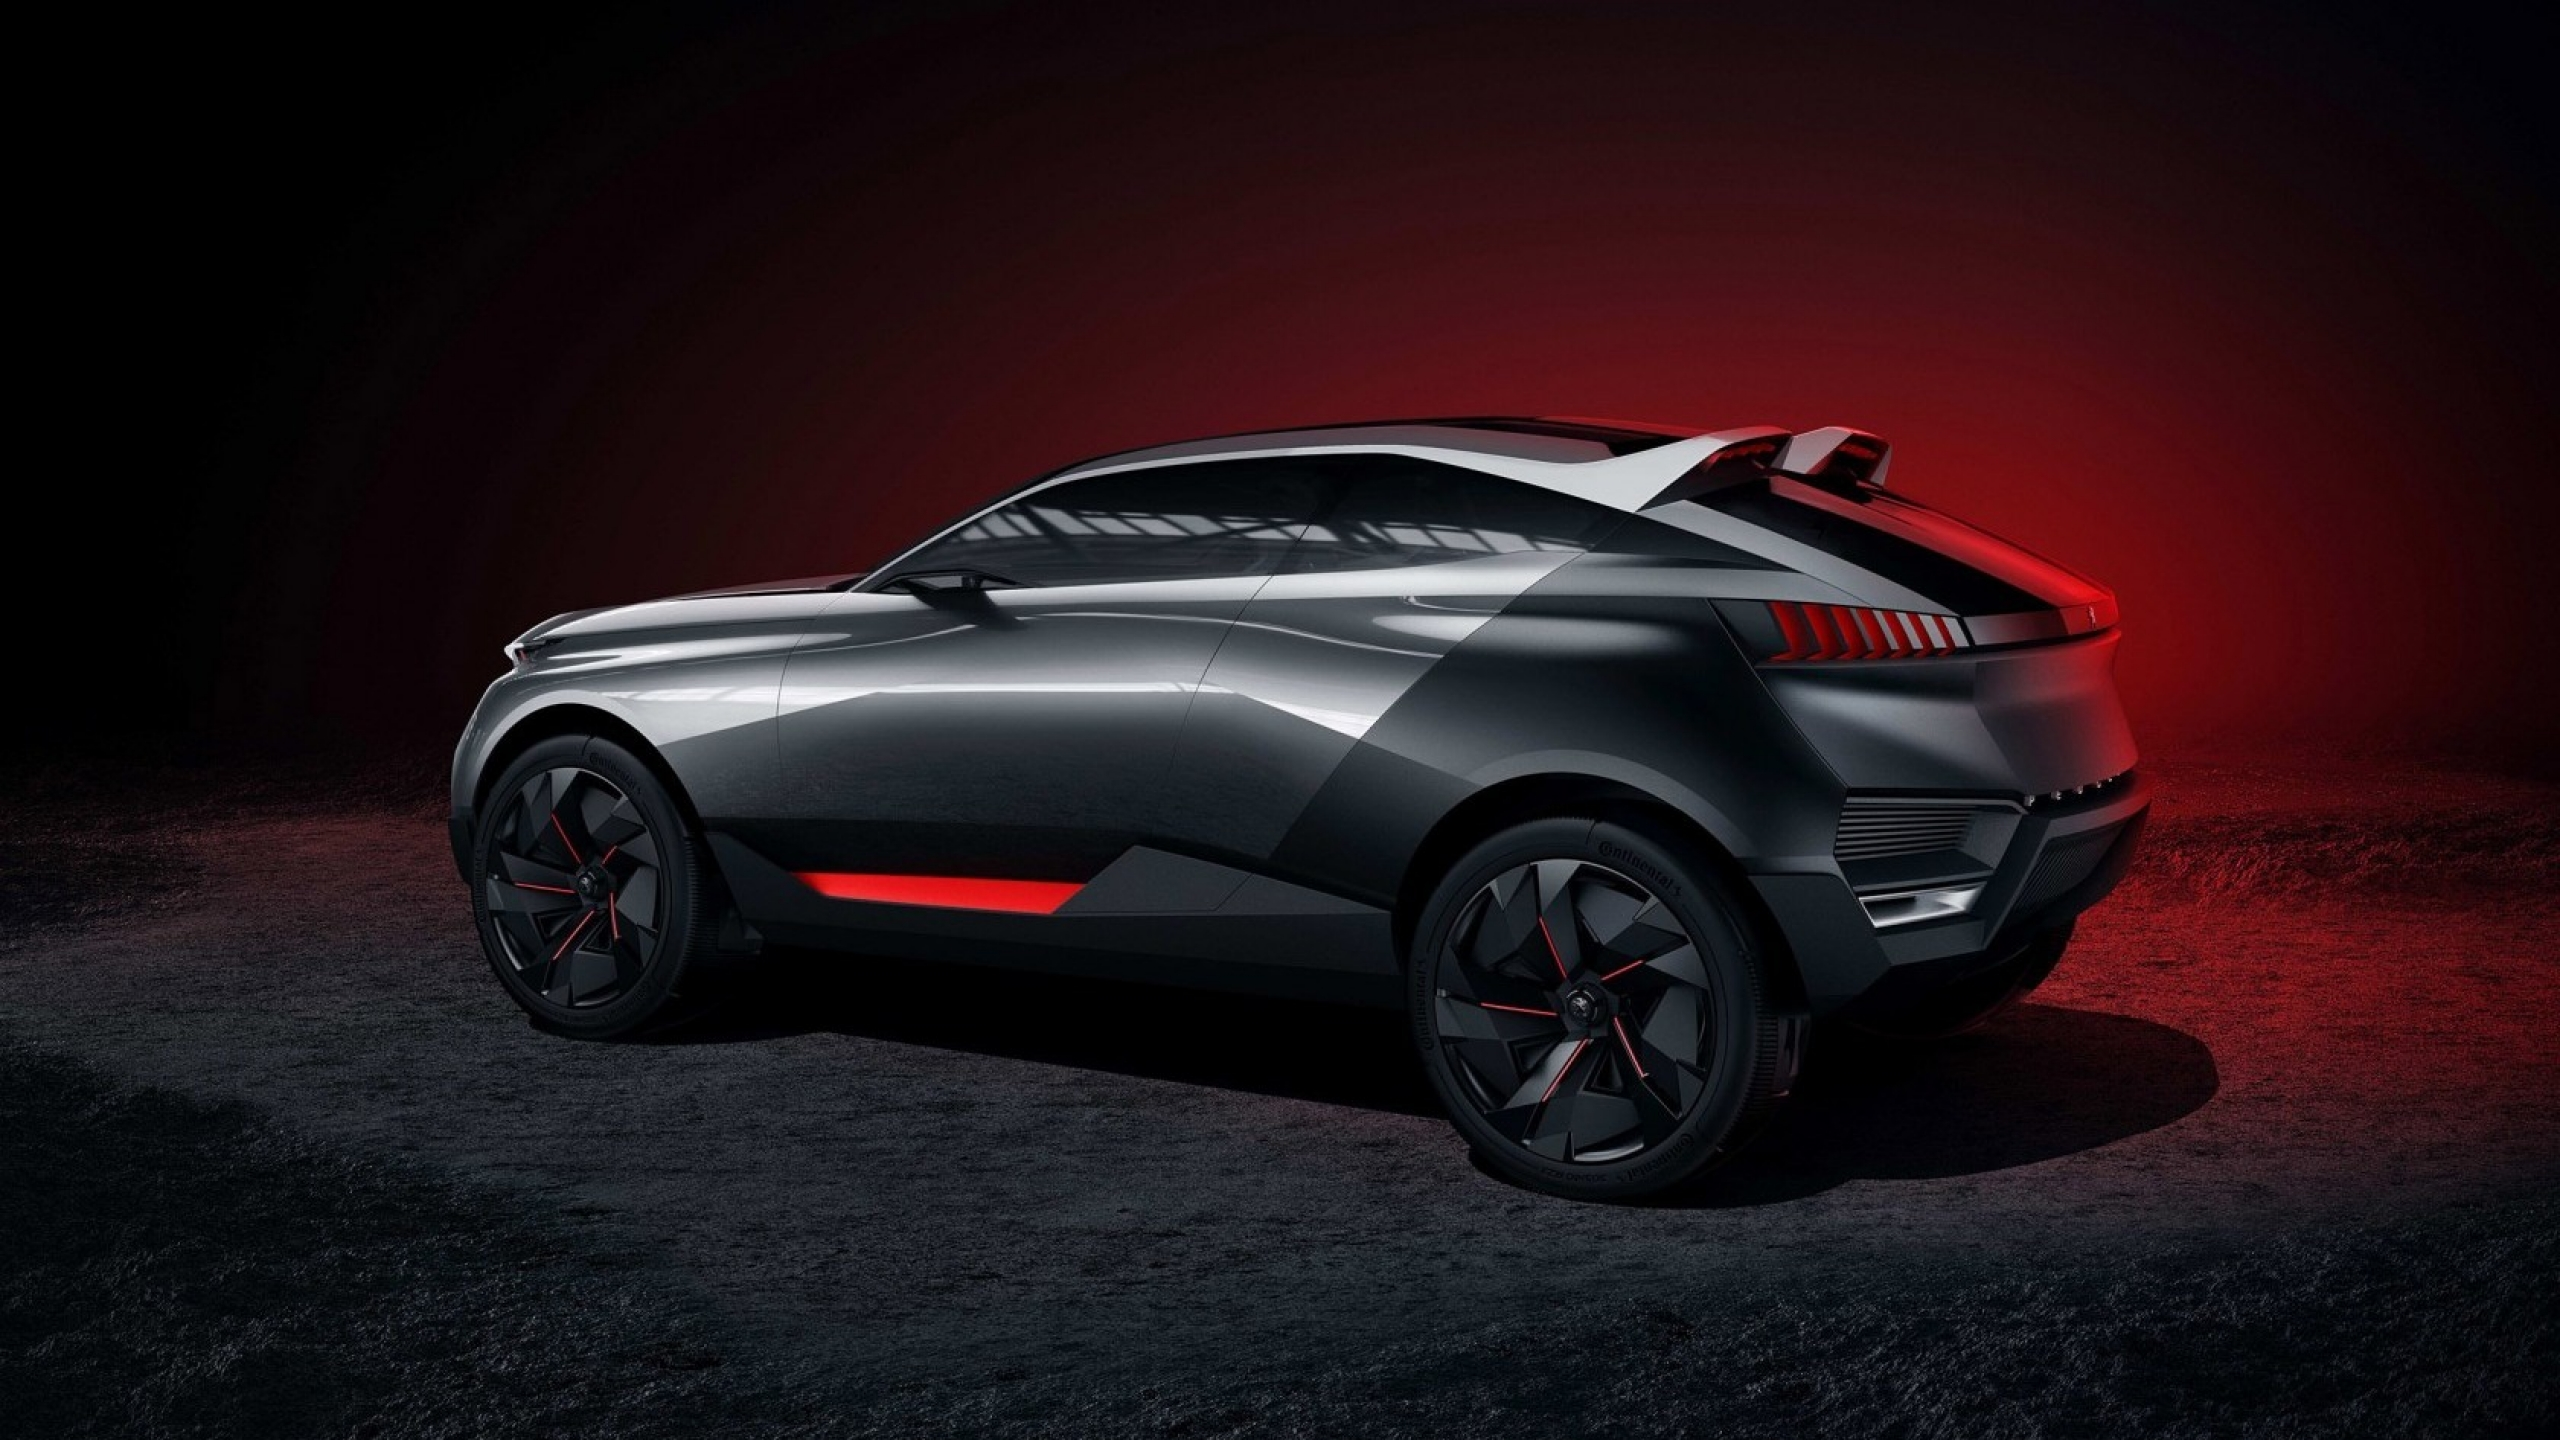 peugeot quartz concept side view 2560x1440 wallpaper